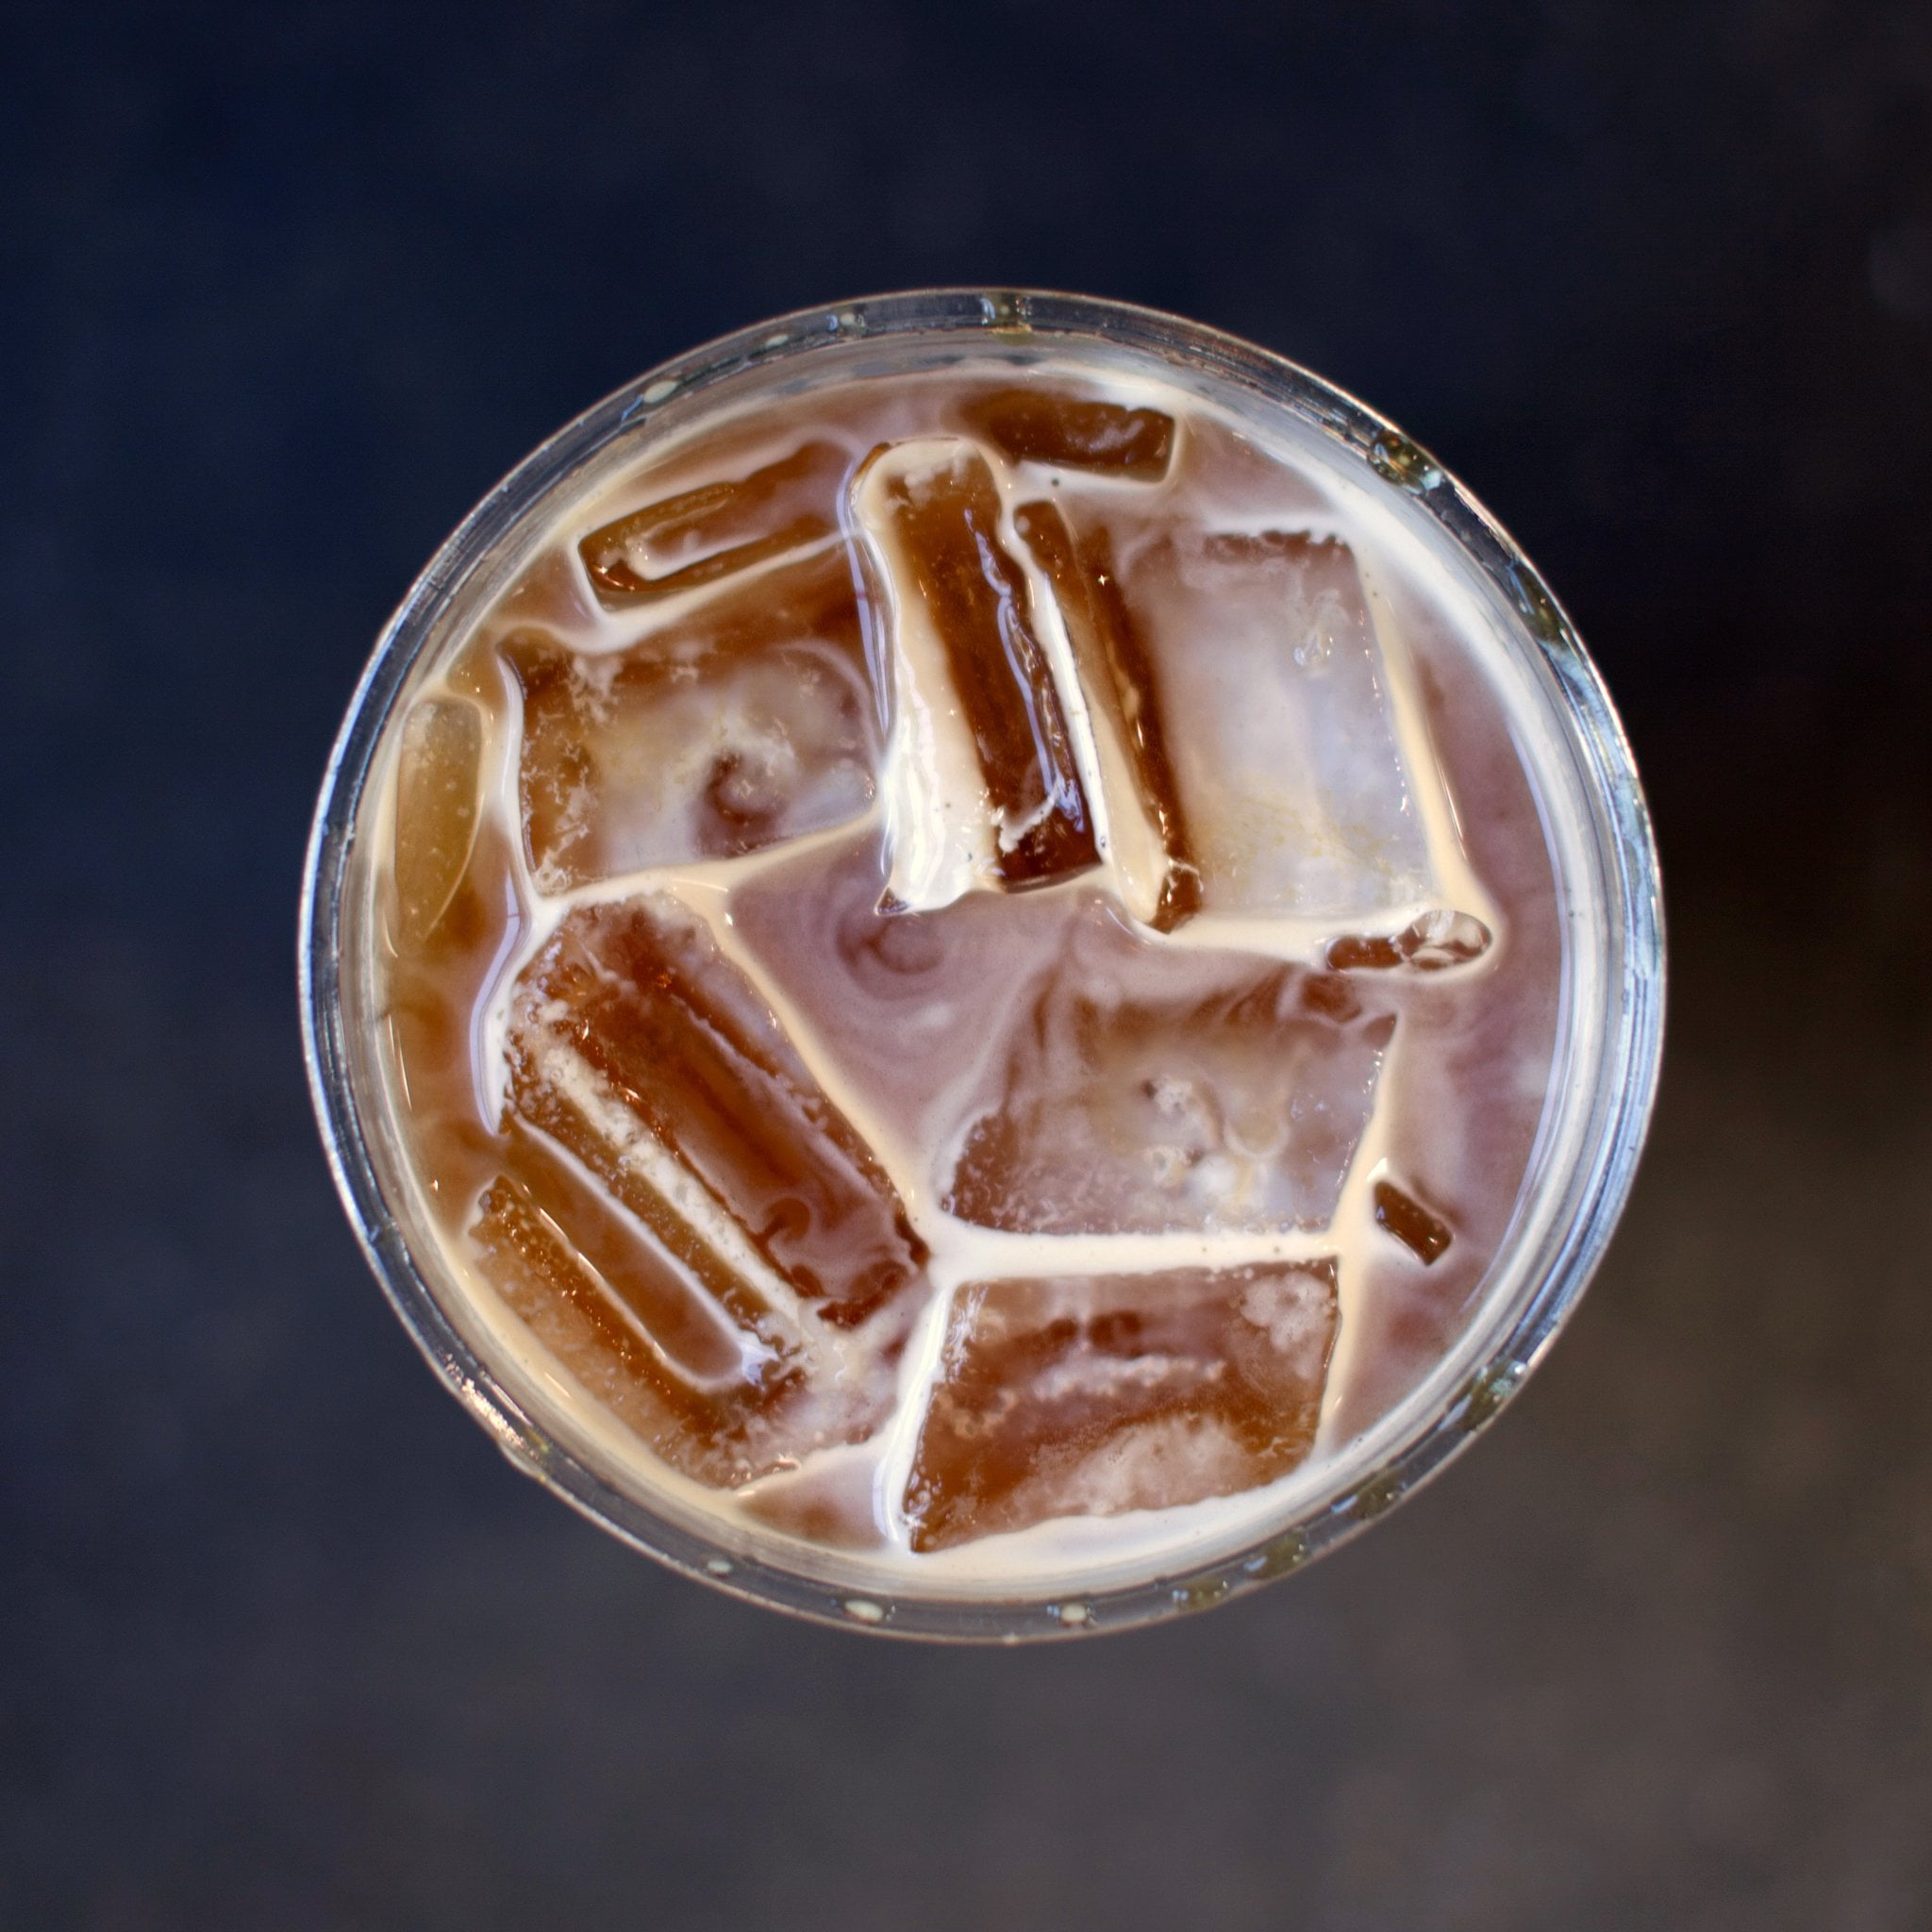 The Story Behind Starbucks's Cold Brew Will Make You an Even Bigger Fan